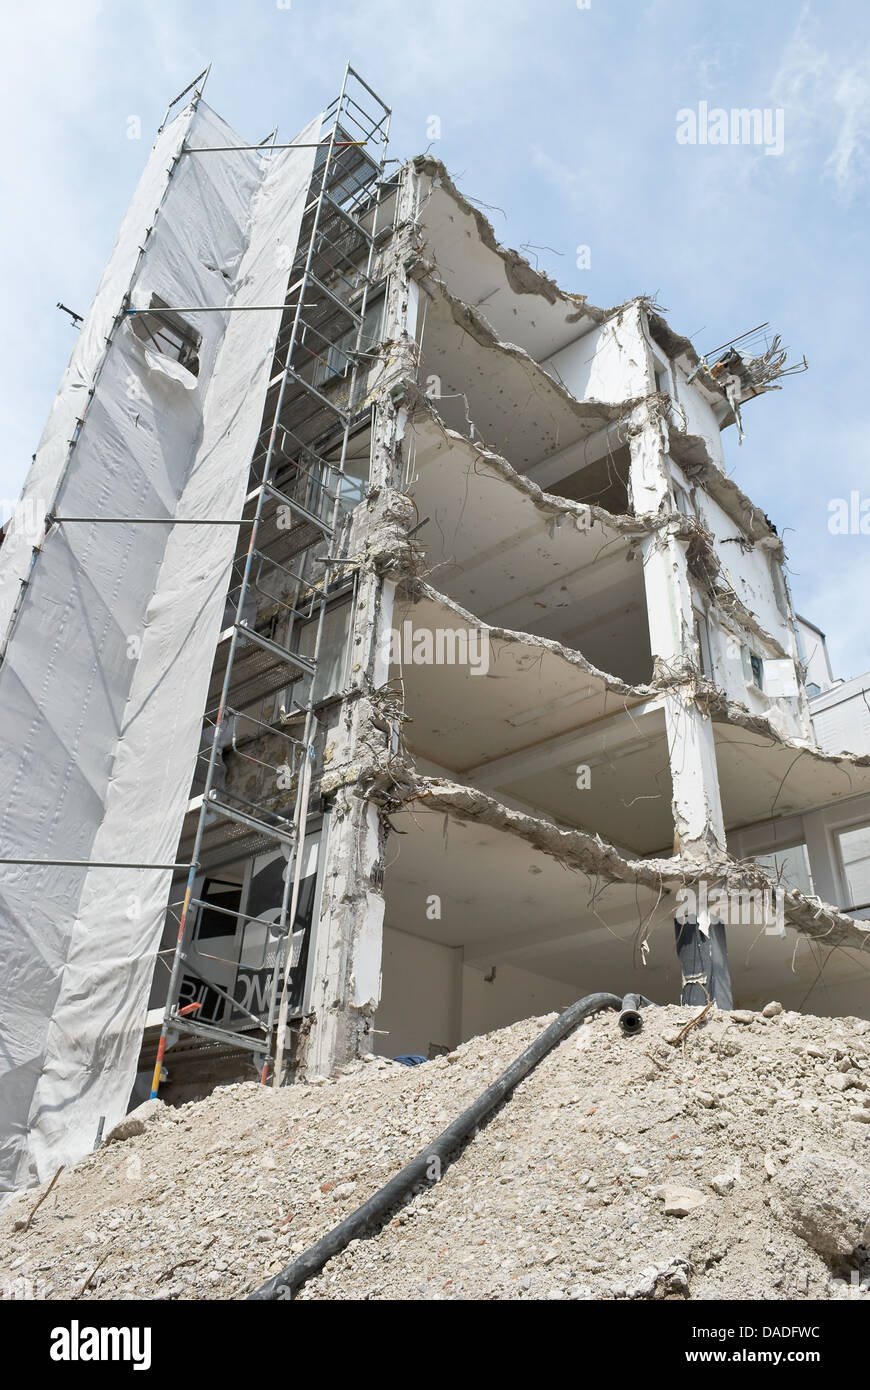 Building Demolition as Sign of Urban Renewal - Stock Image